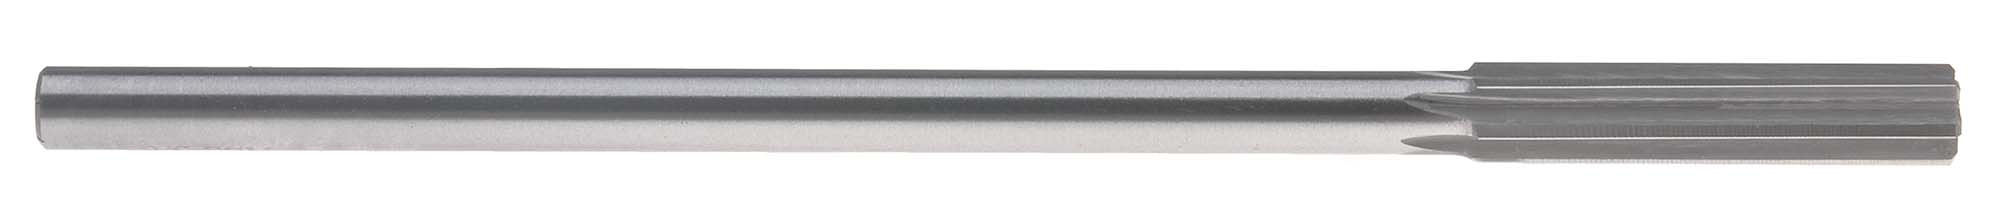 .999 Straight Shank Chucking Reamer, Straight Flute, High Speed Steel